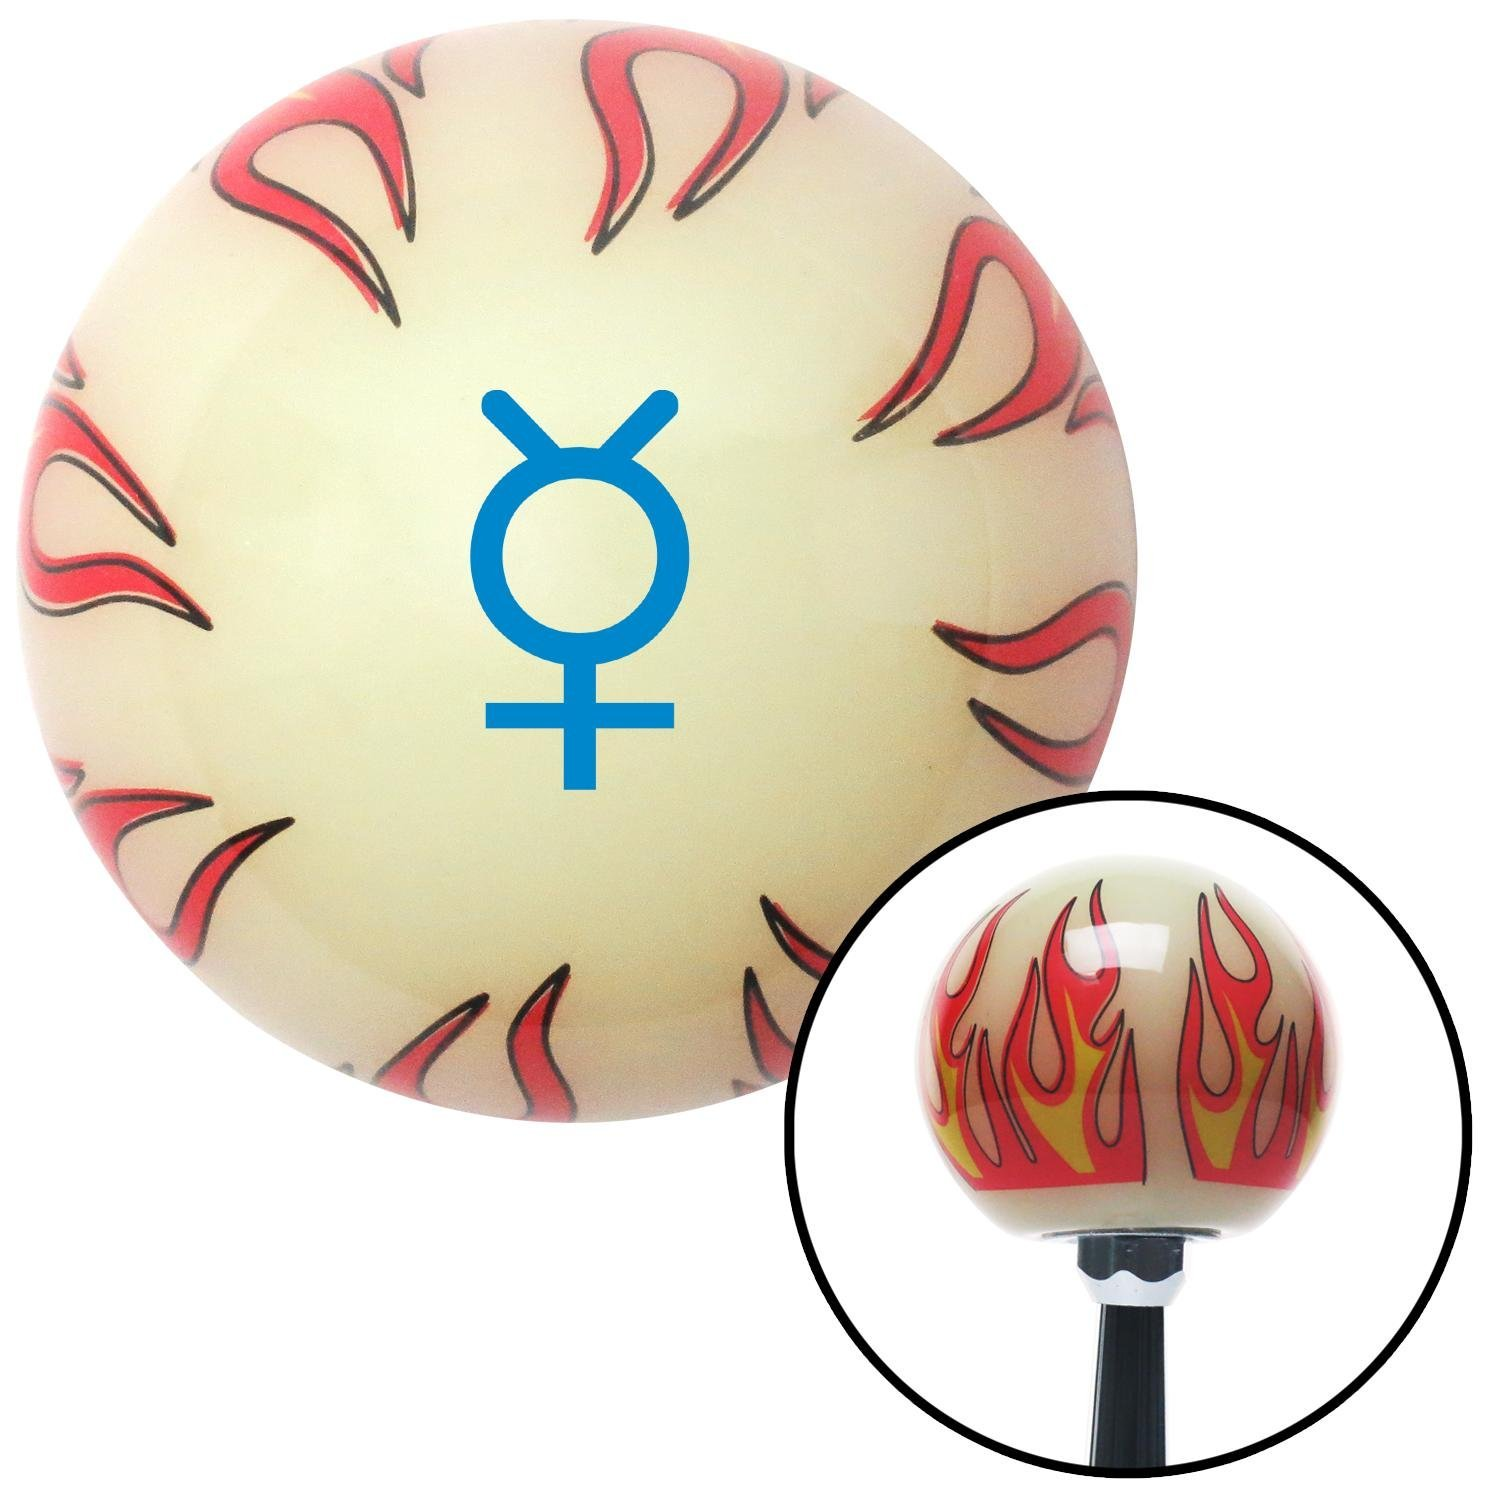 American Shifter 293006 Shift Knob Blue Mercury Ivory Flame with M16 x 1.5 Insert